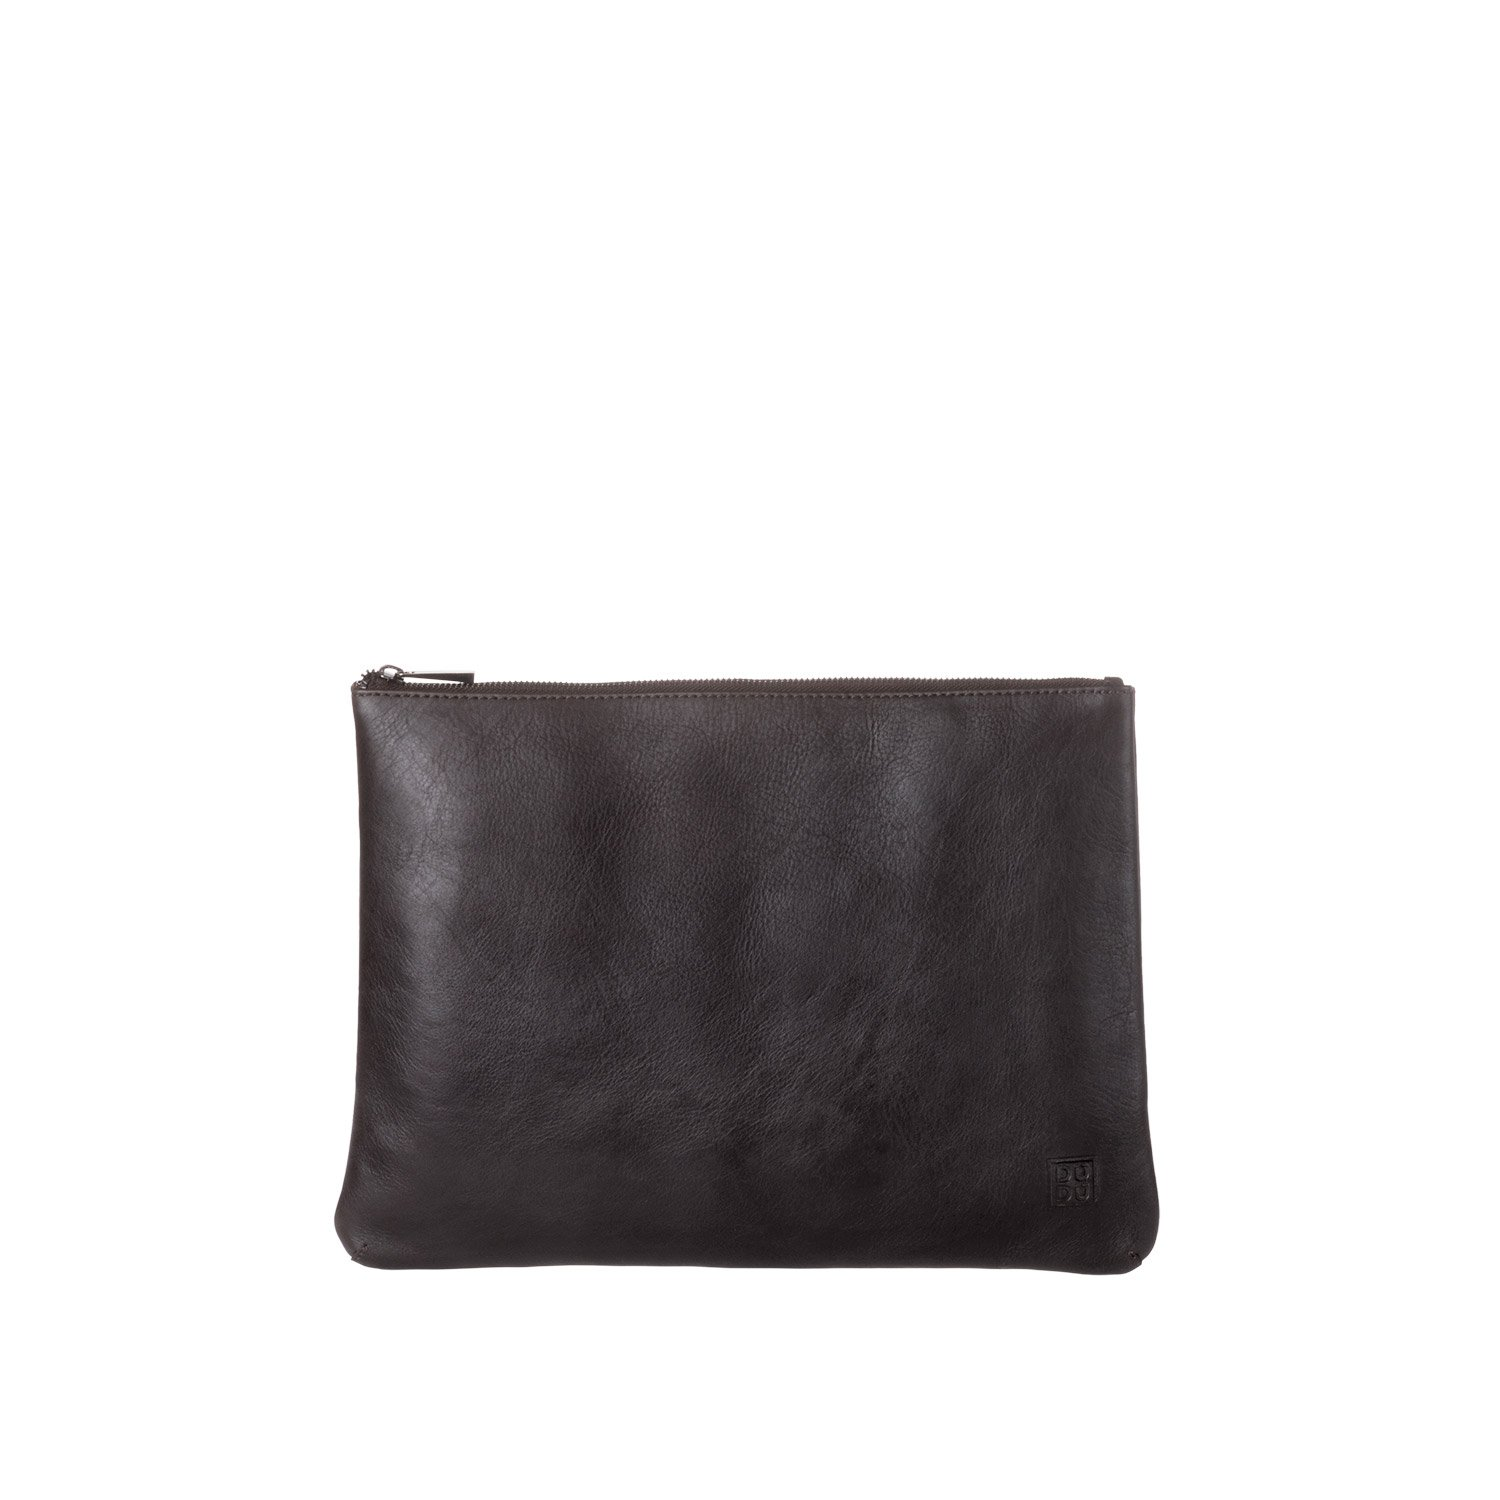 DUDU Clutch Bag Purse with Handle for ladies and men in Real Leather Slim & Large Handbag with Zipper closure - Isa - Dark brow by DuDu